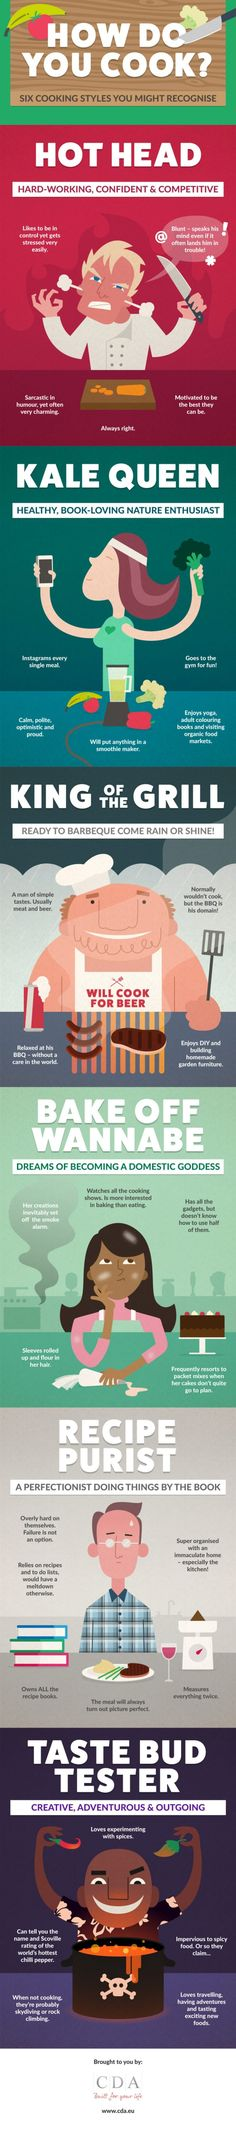 How Do You Cook? 6 Cooking Styles You Might Recognize #Infographic #Cooking